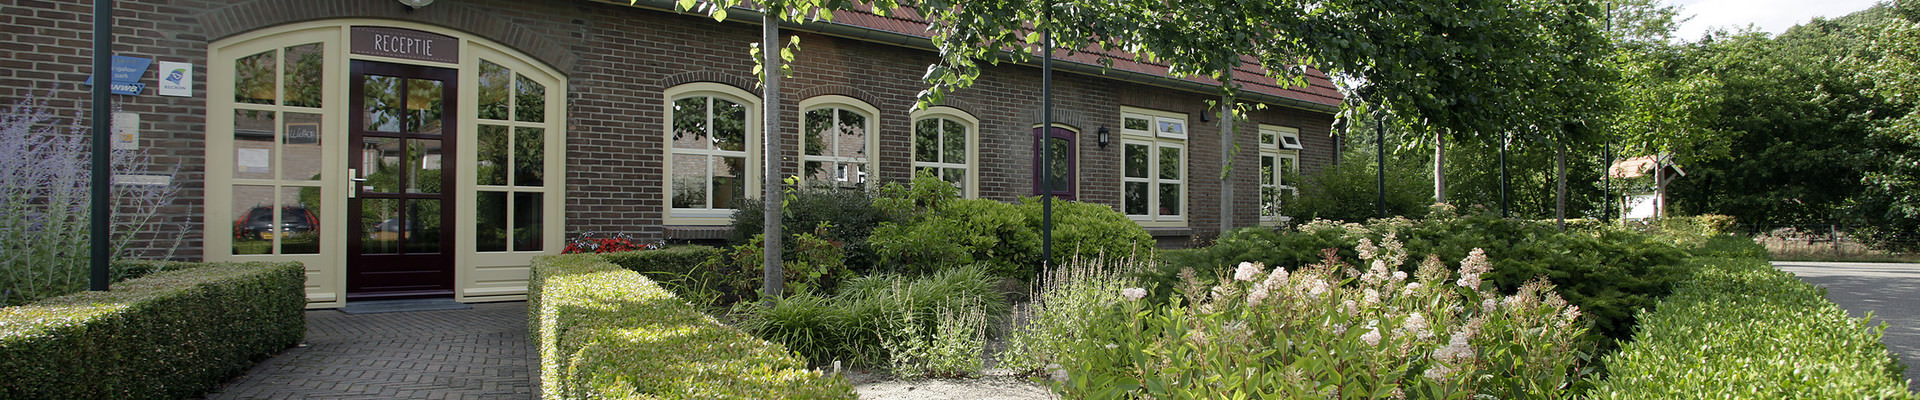 Our Holiday Parks near Plasmolen. Mook and Groesbeek